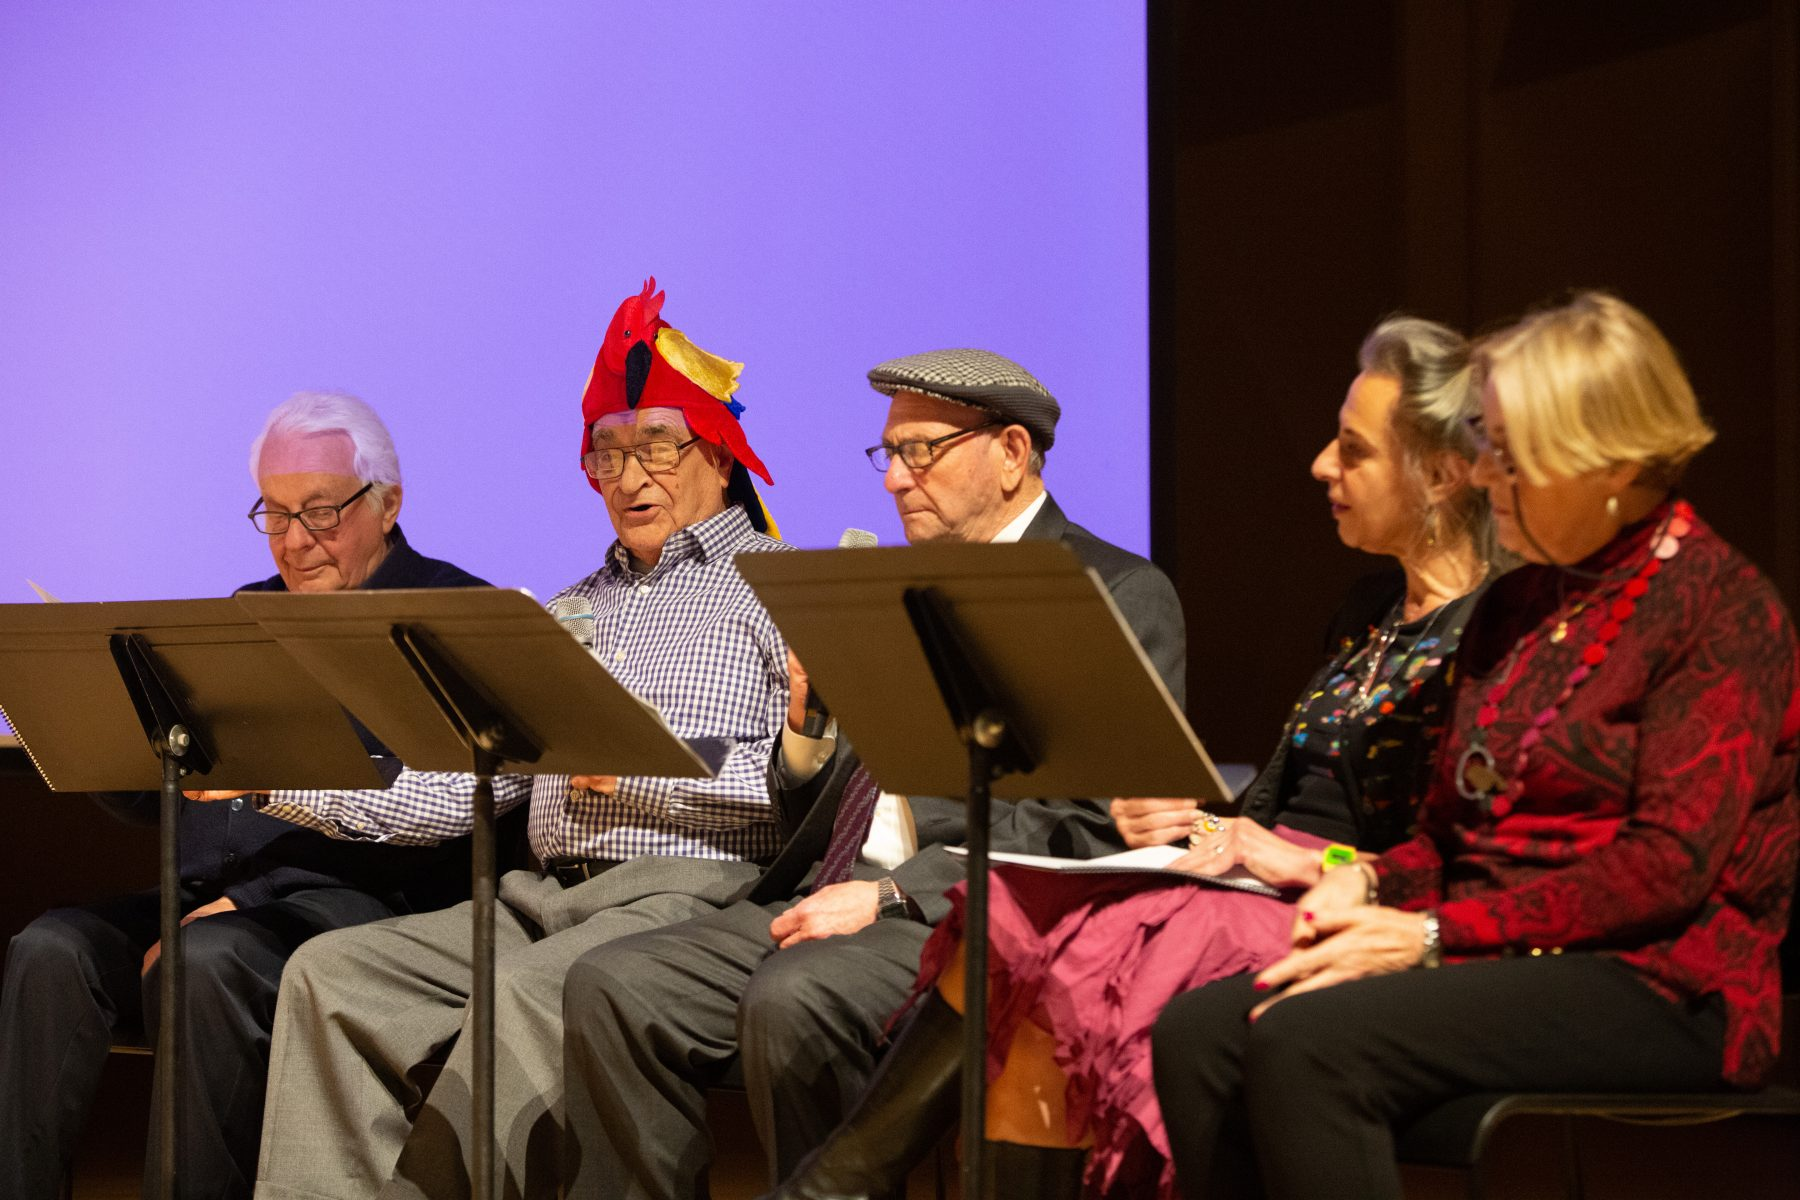 Members of the Ladineros group, including one man wearing a parrot hat, read from scripts